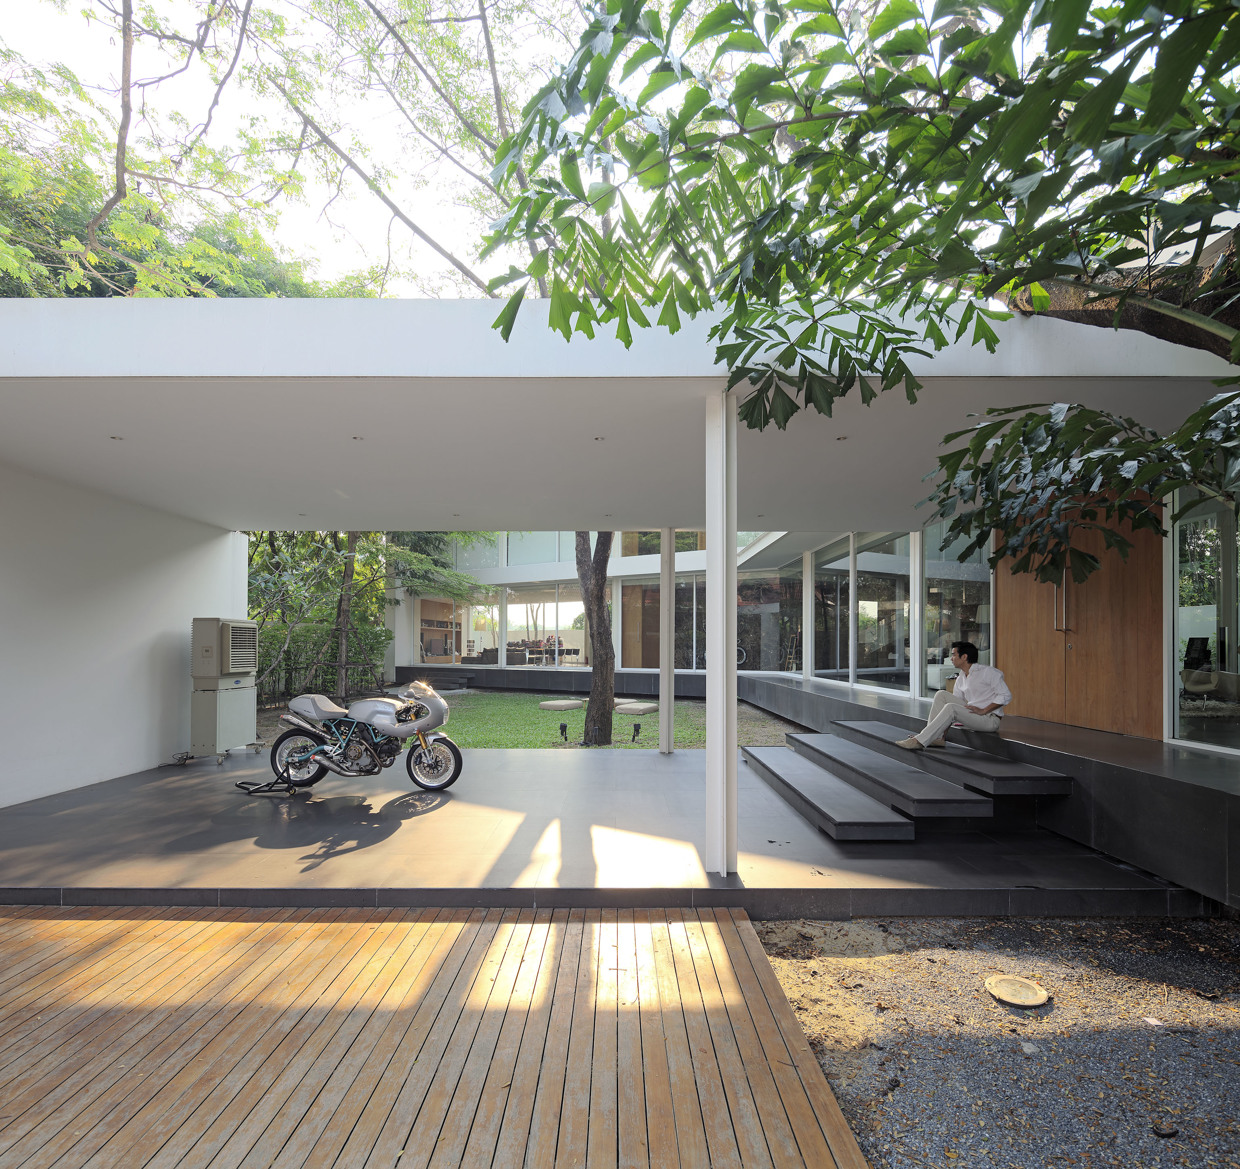 Karpot Carport-designinterior Design Ideas.